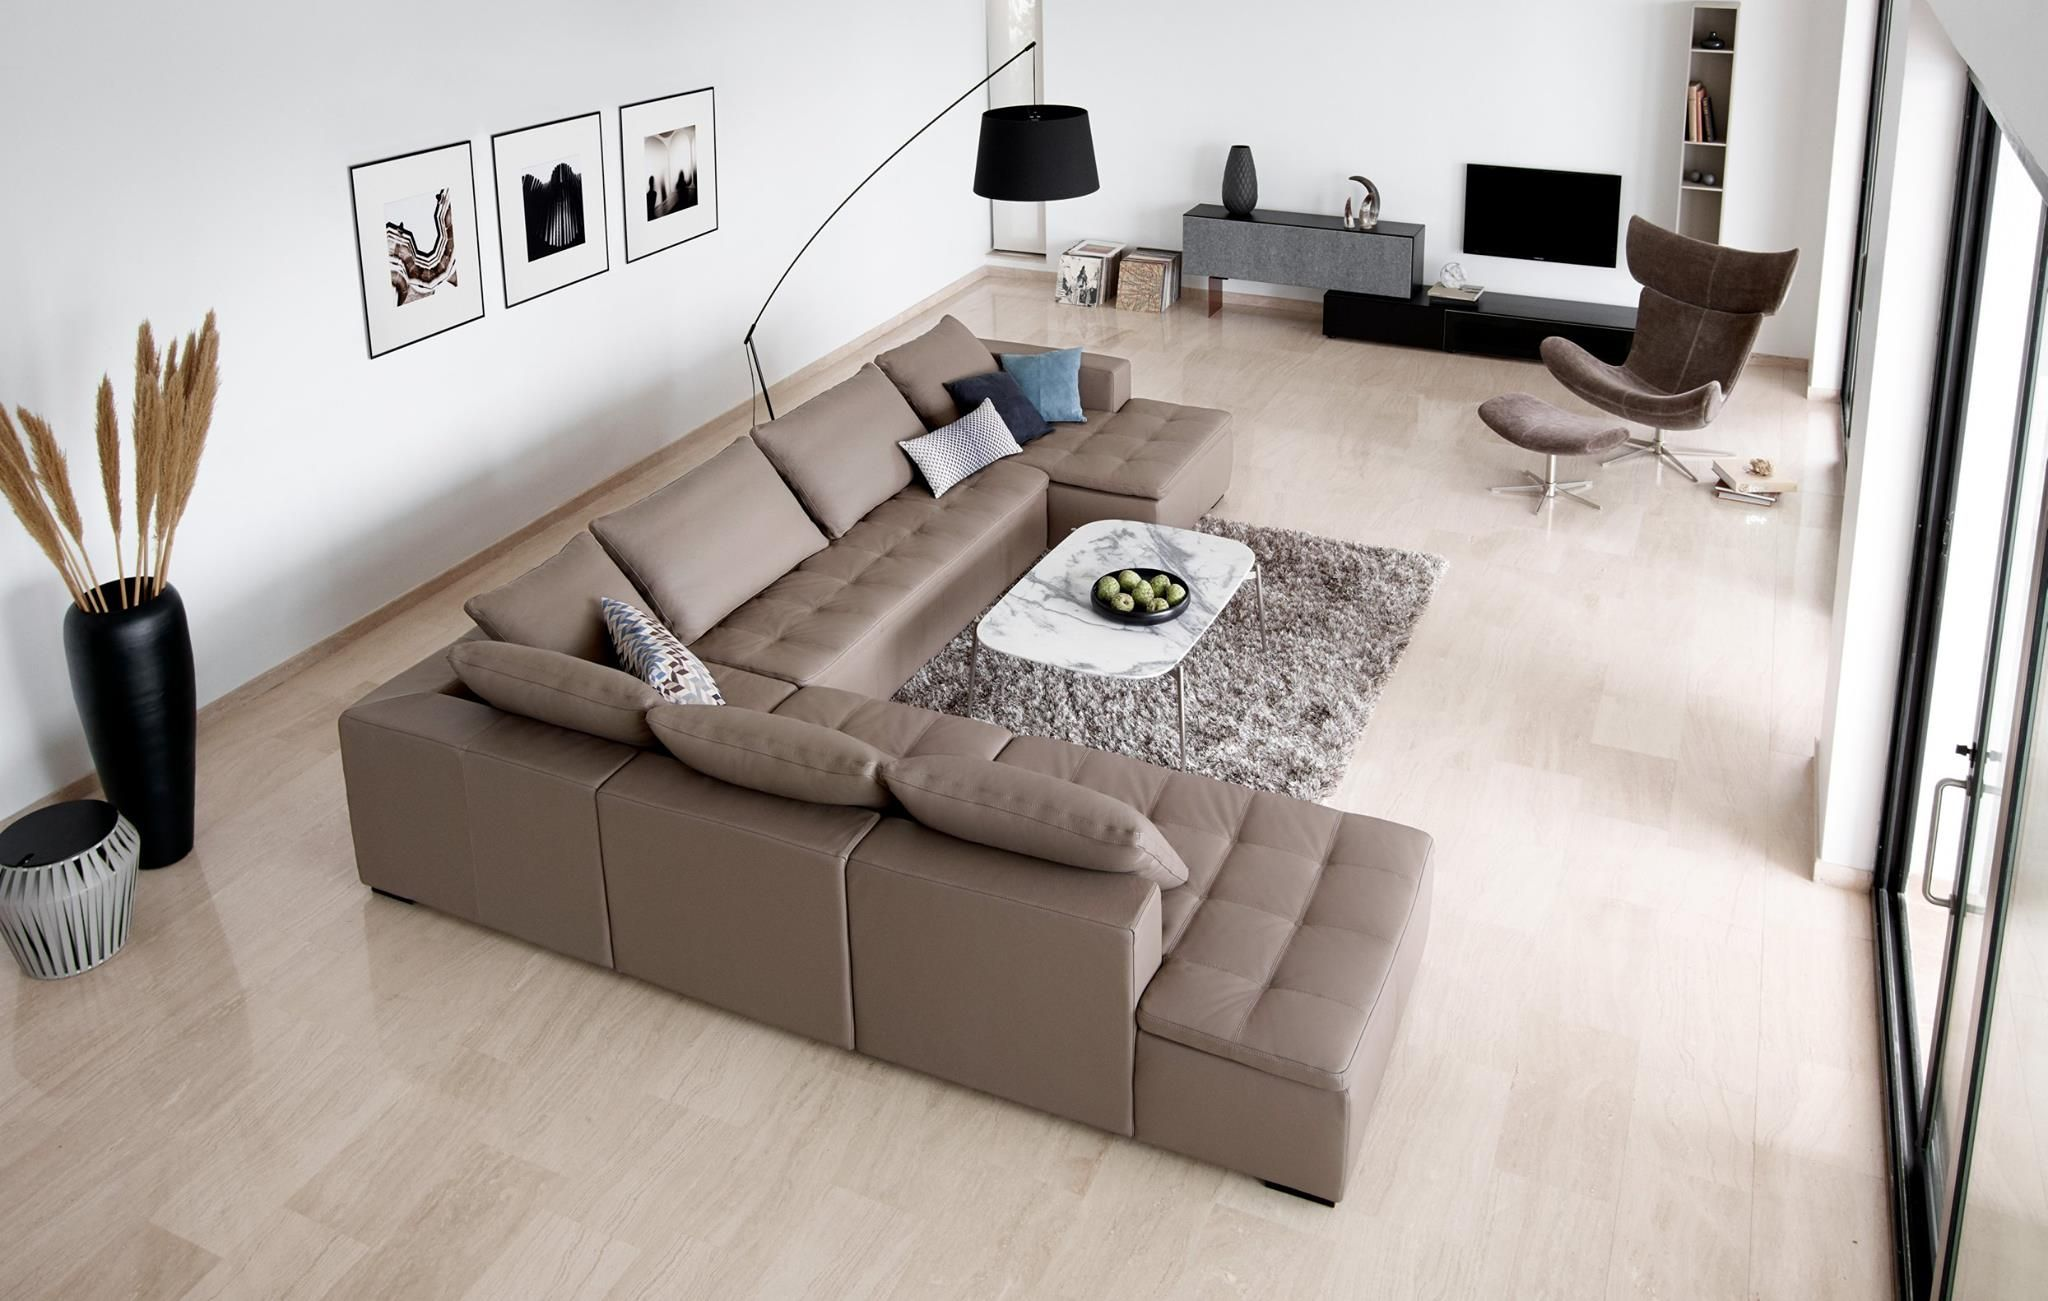 The Mezzo Sofa Comes In All Sizes And Shapes With A Choice Of Diffe Seating Units Is Available Fabrics Leather